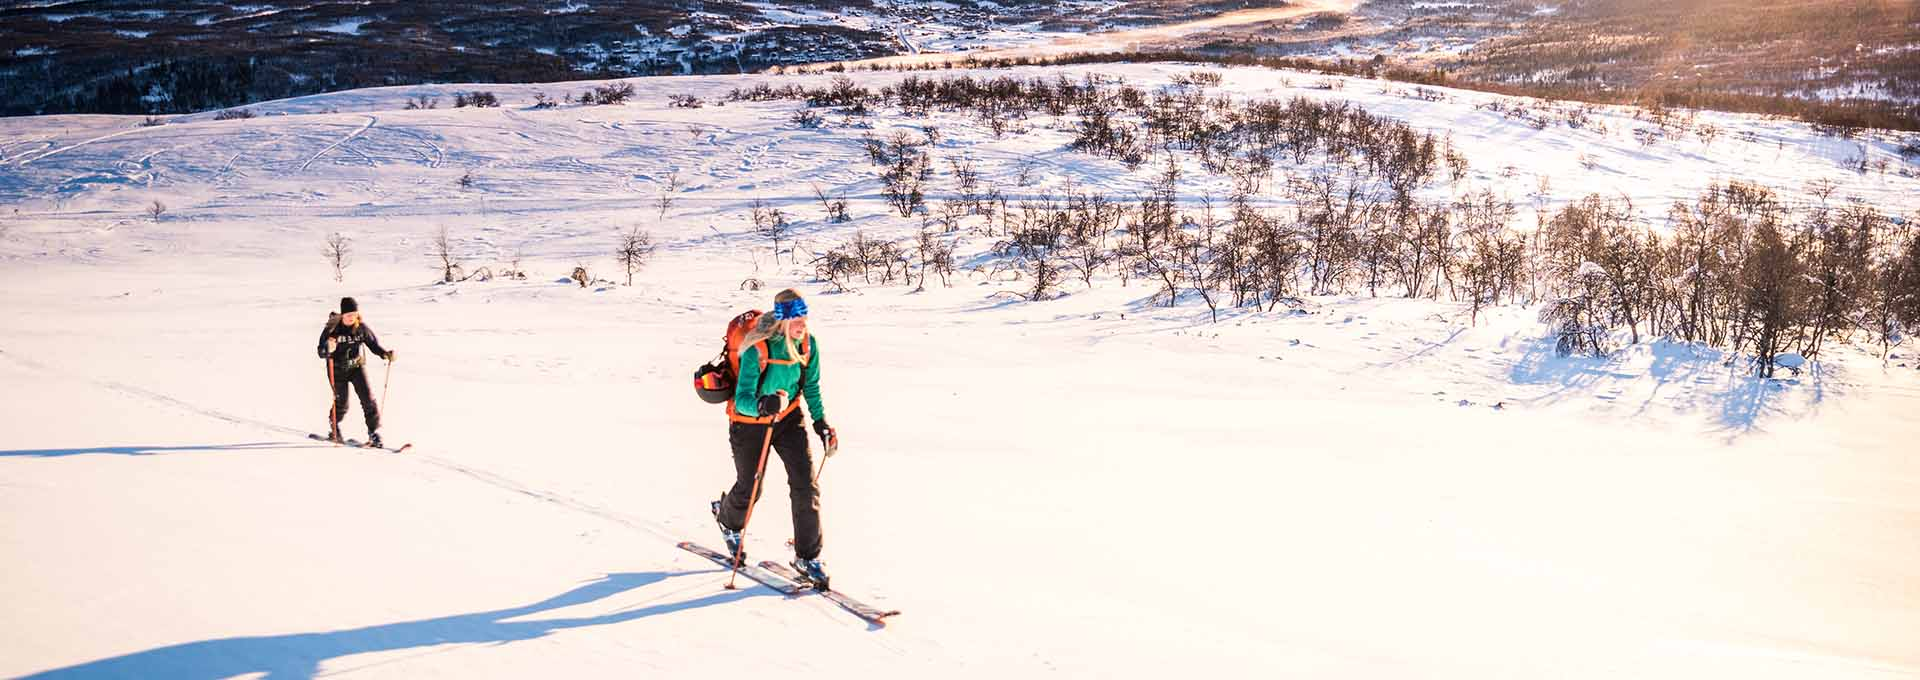 Two persons try out ski touring